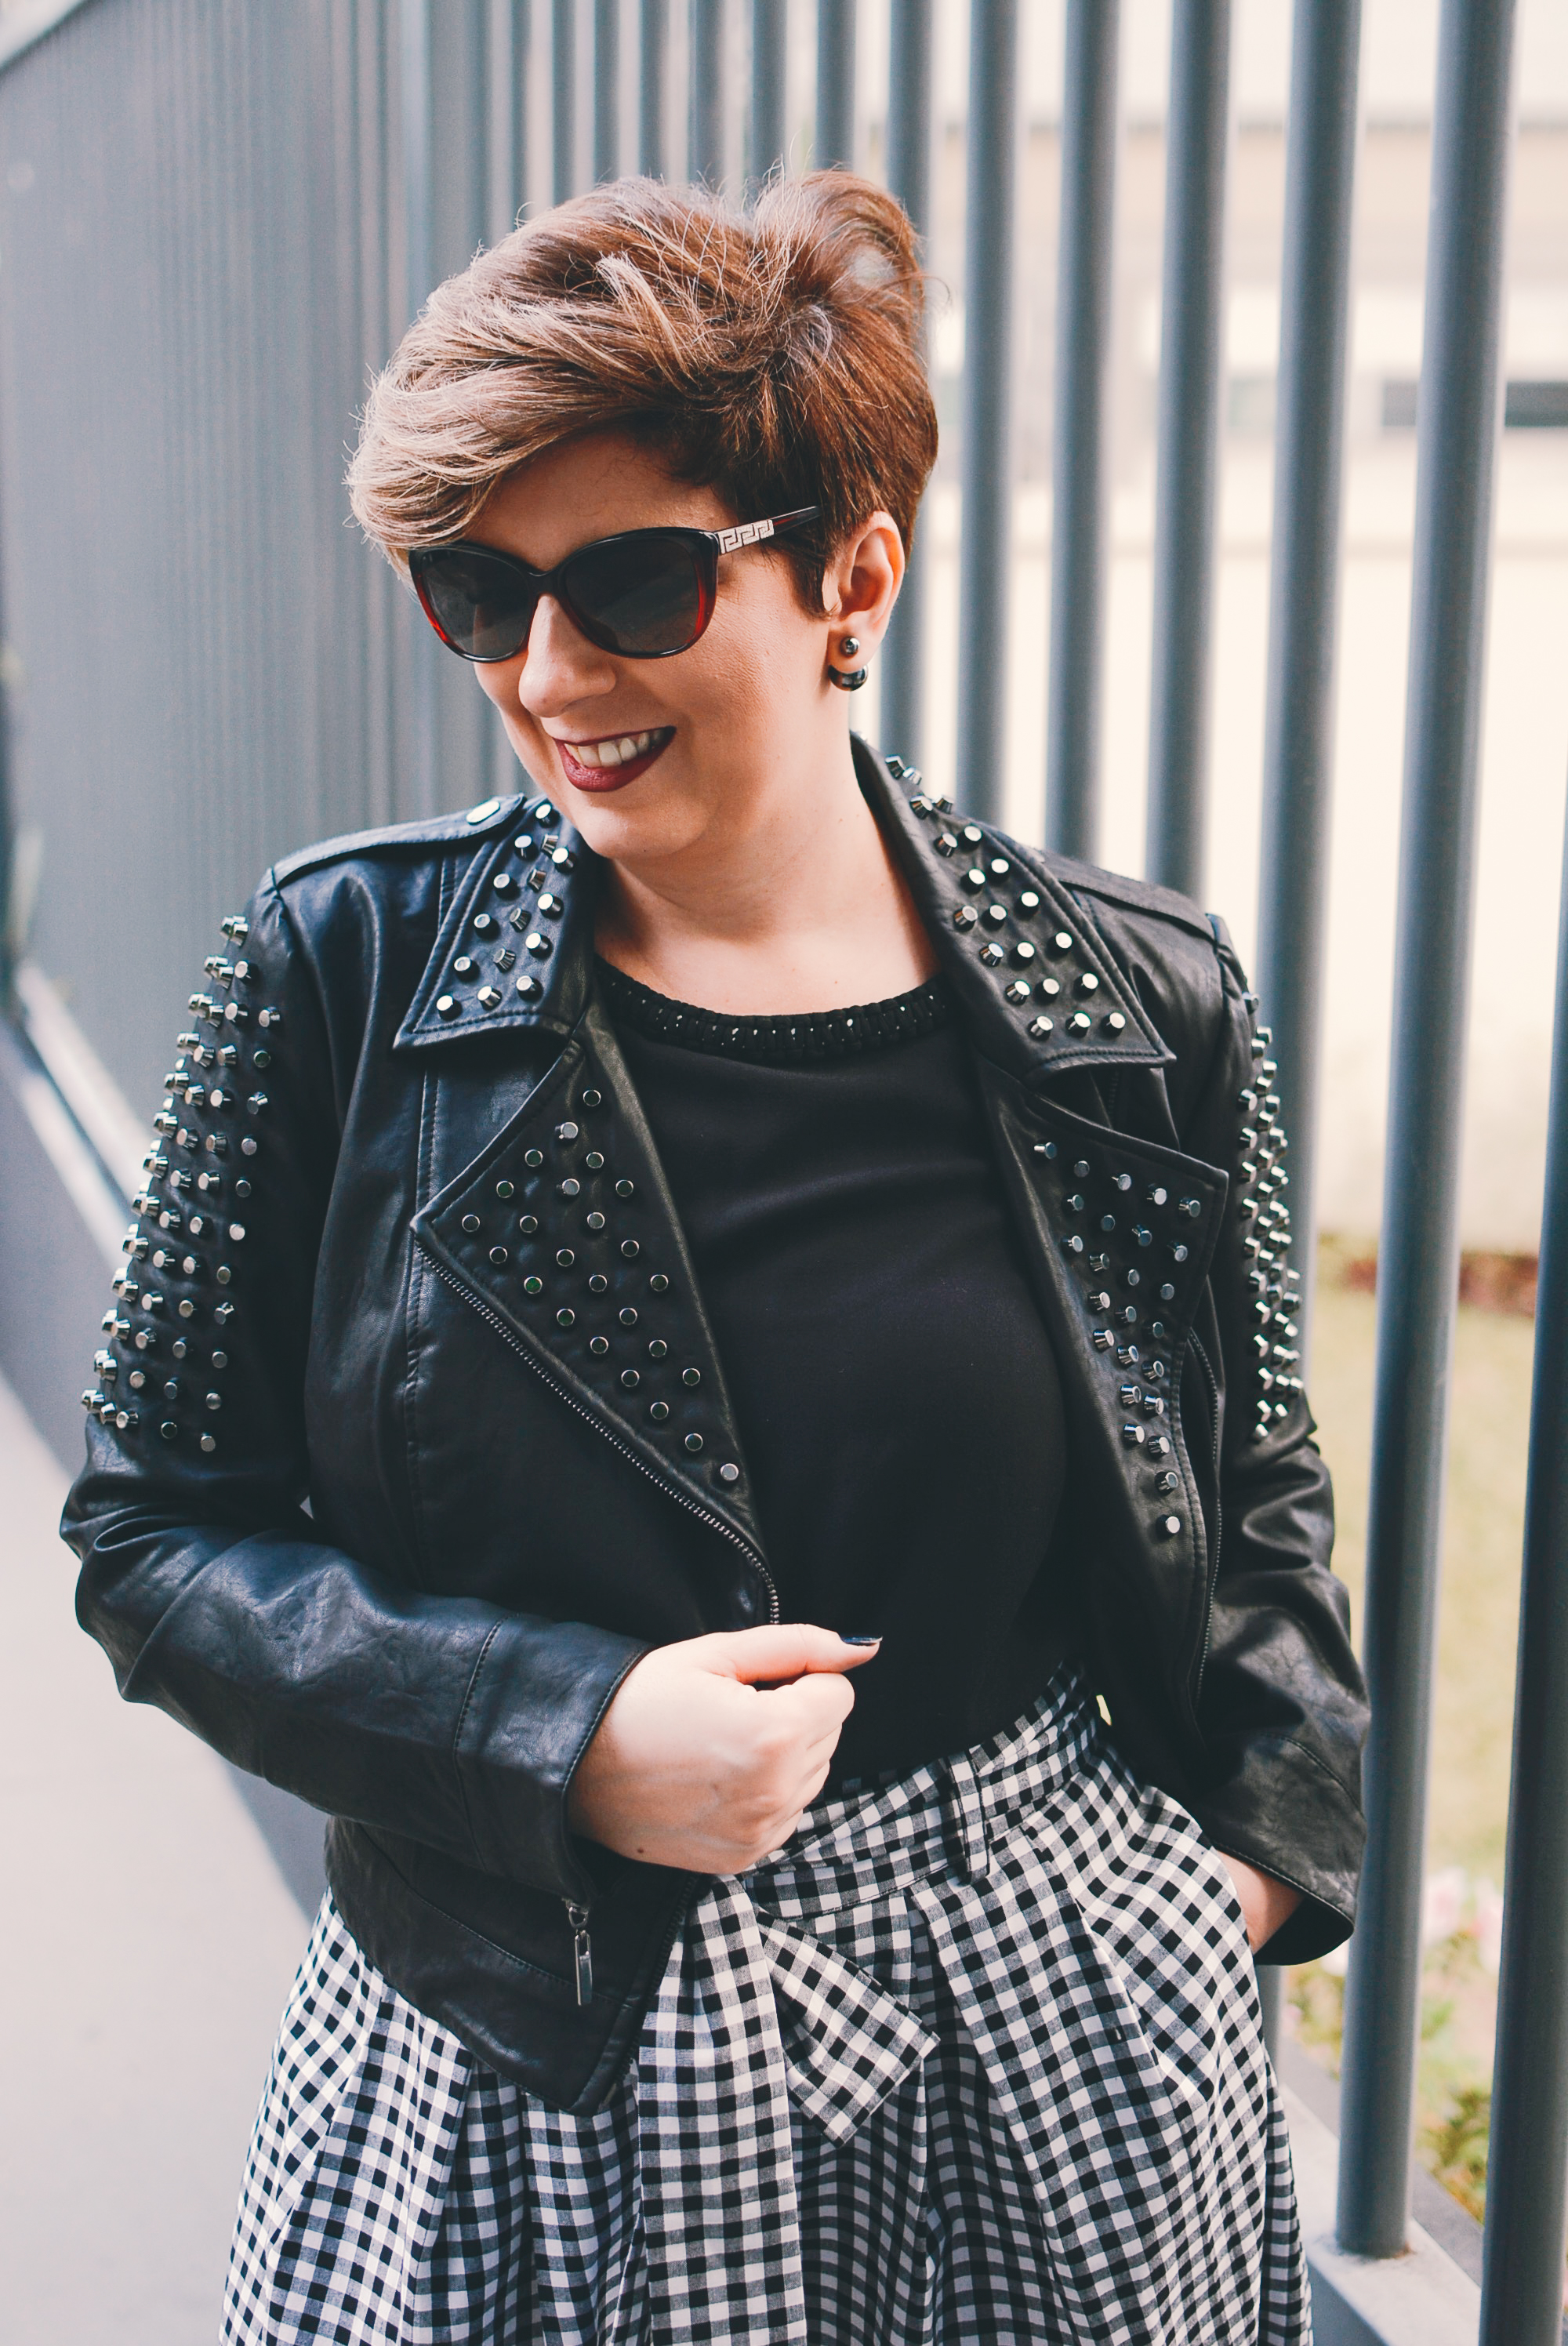 estampa_vichy_e_bomber_jacket_look_do_dia_por_alessandra_faria